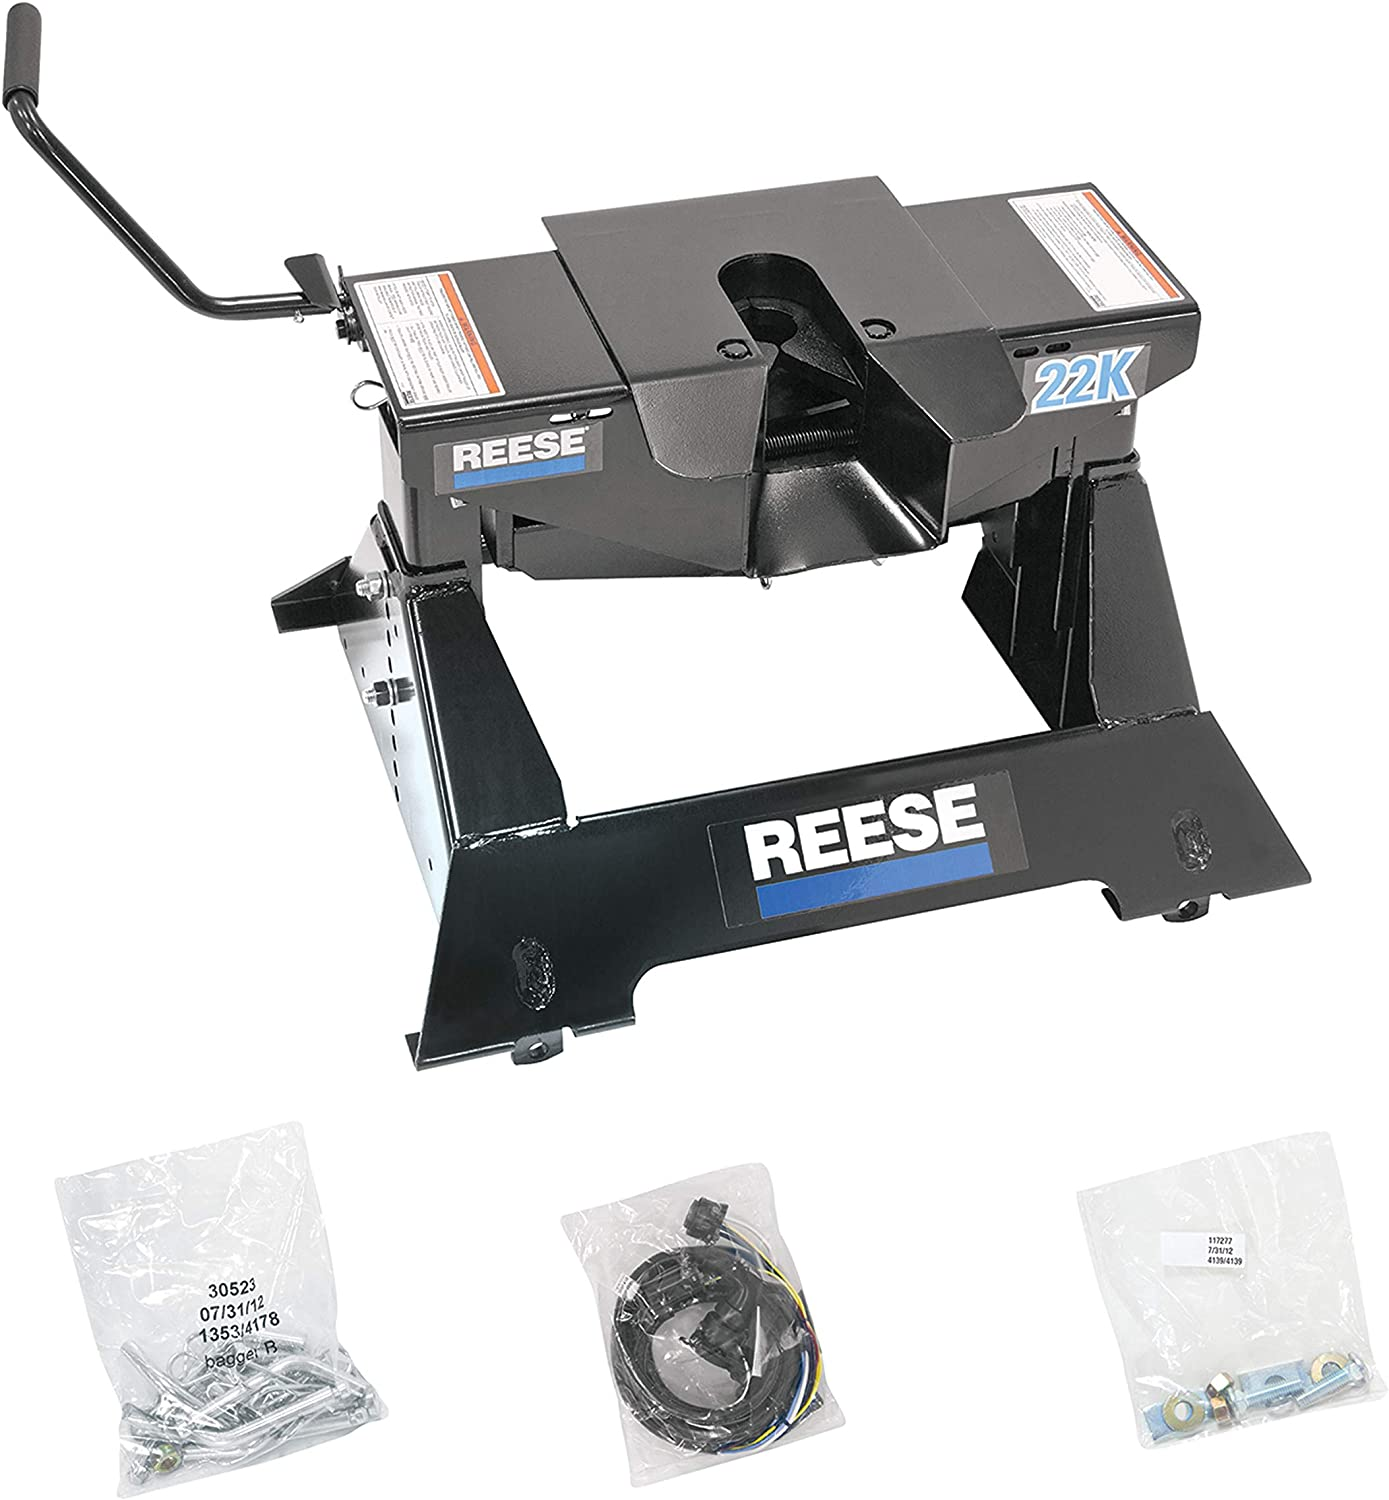 Reese Charlotte Mall Towpower 30033 22K Assembly Hitch Wheel free Fifth